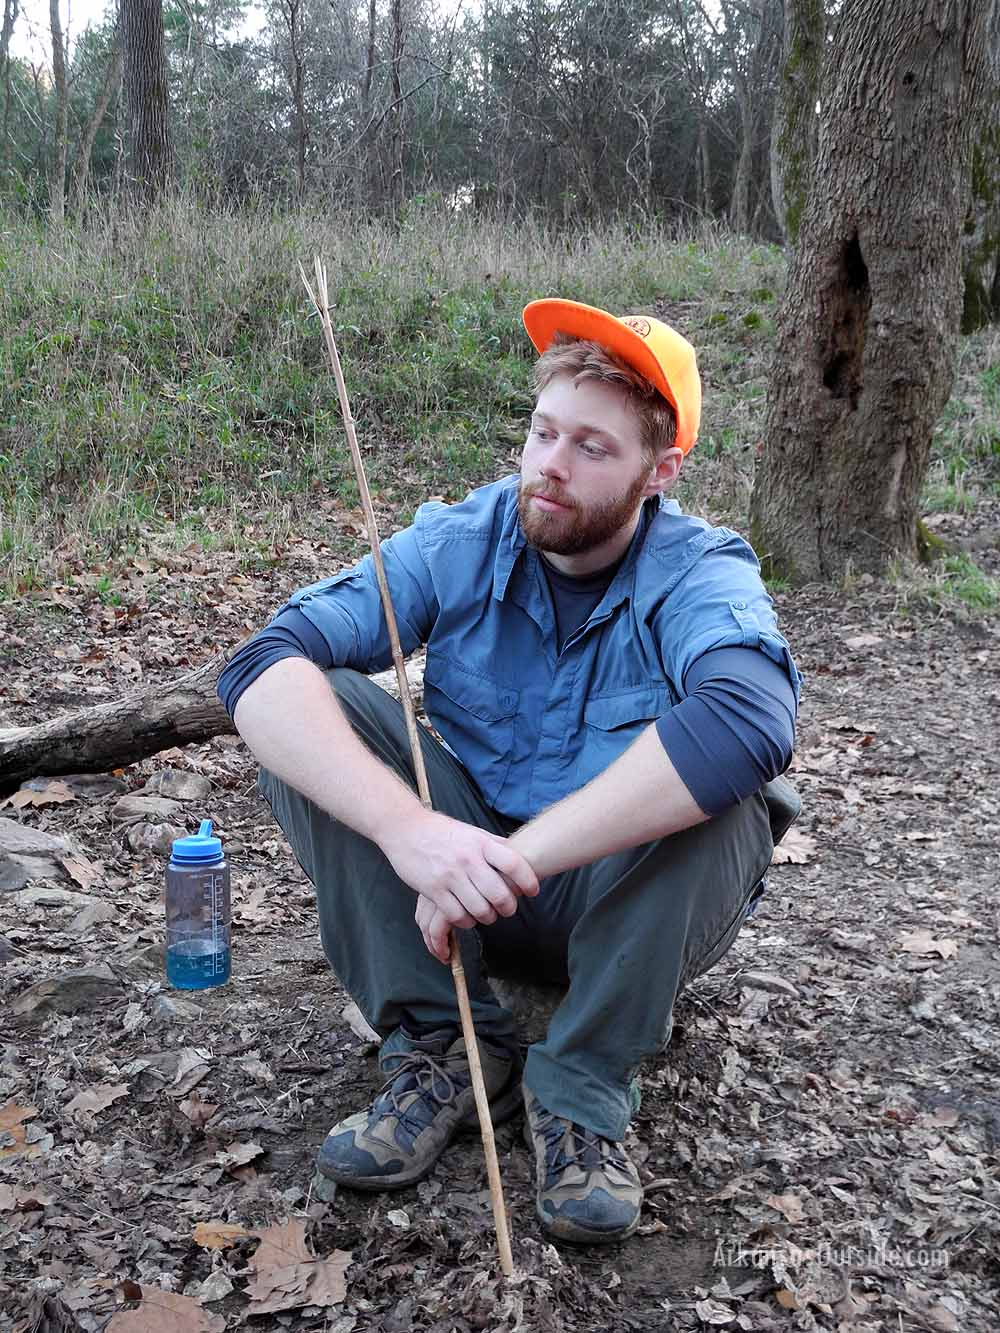 David fashioned a fishing spear a'la Survivorman. You'll see his success in a later photo.